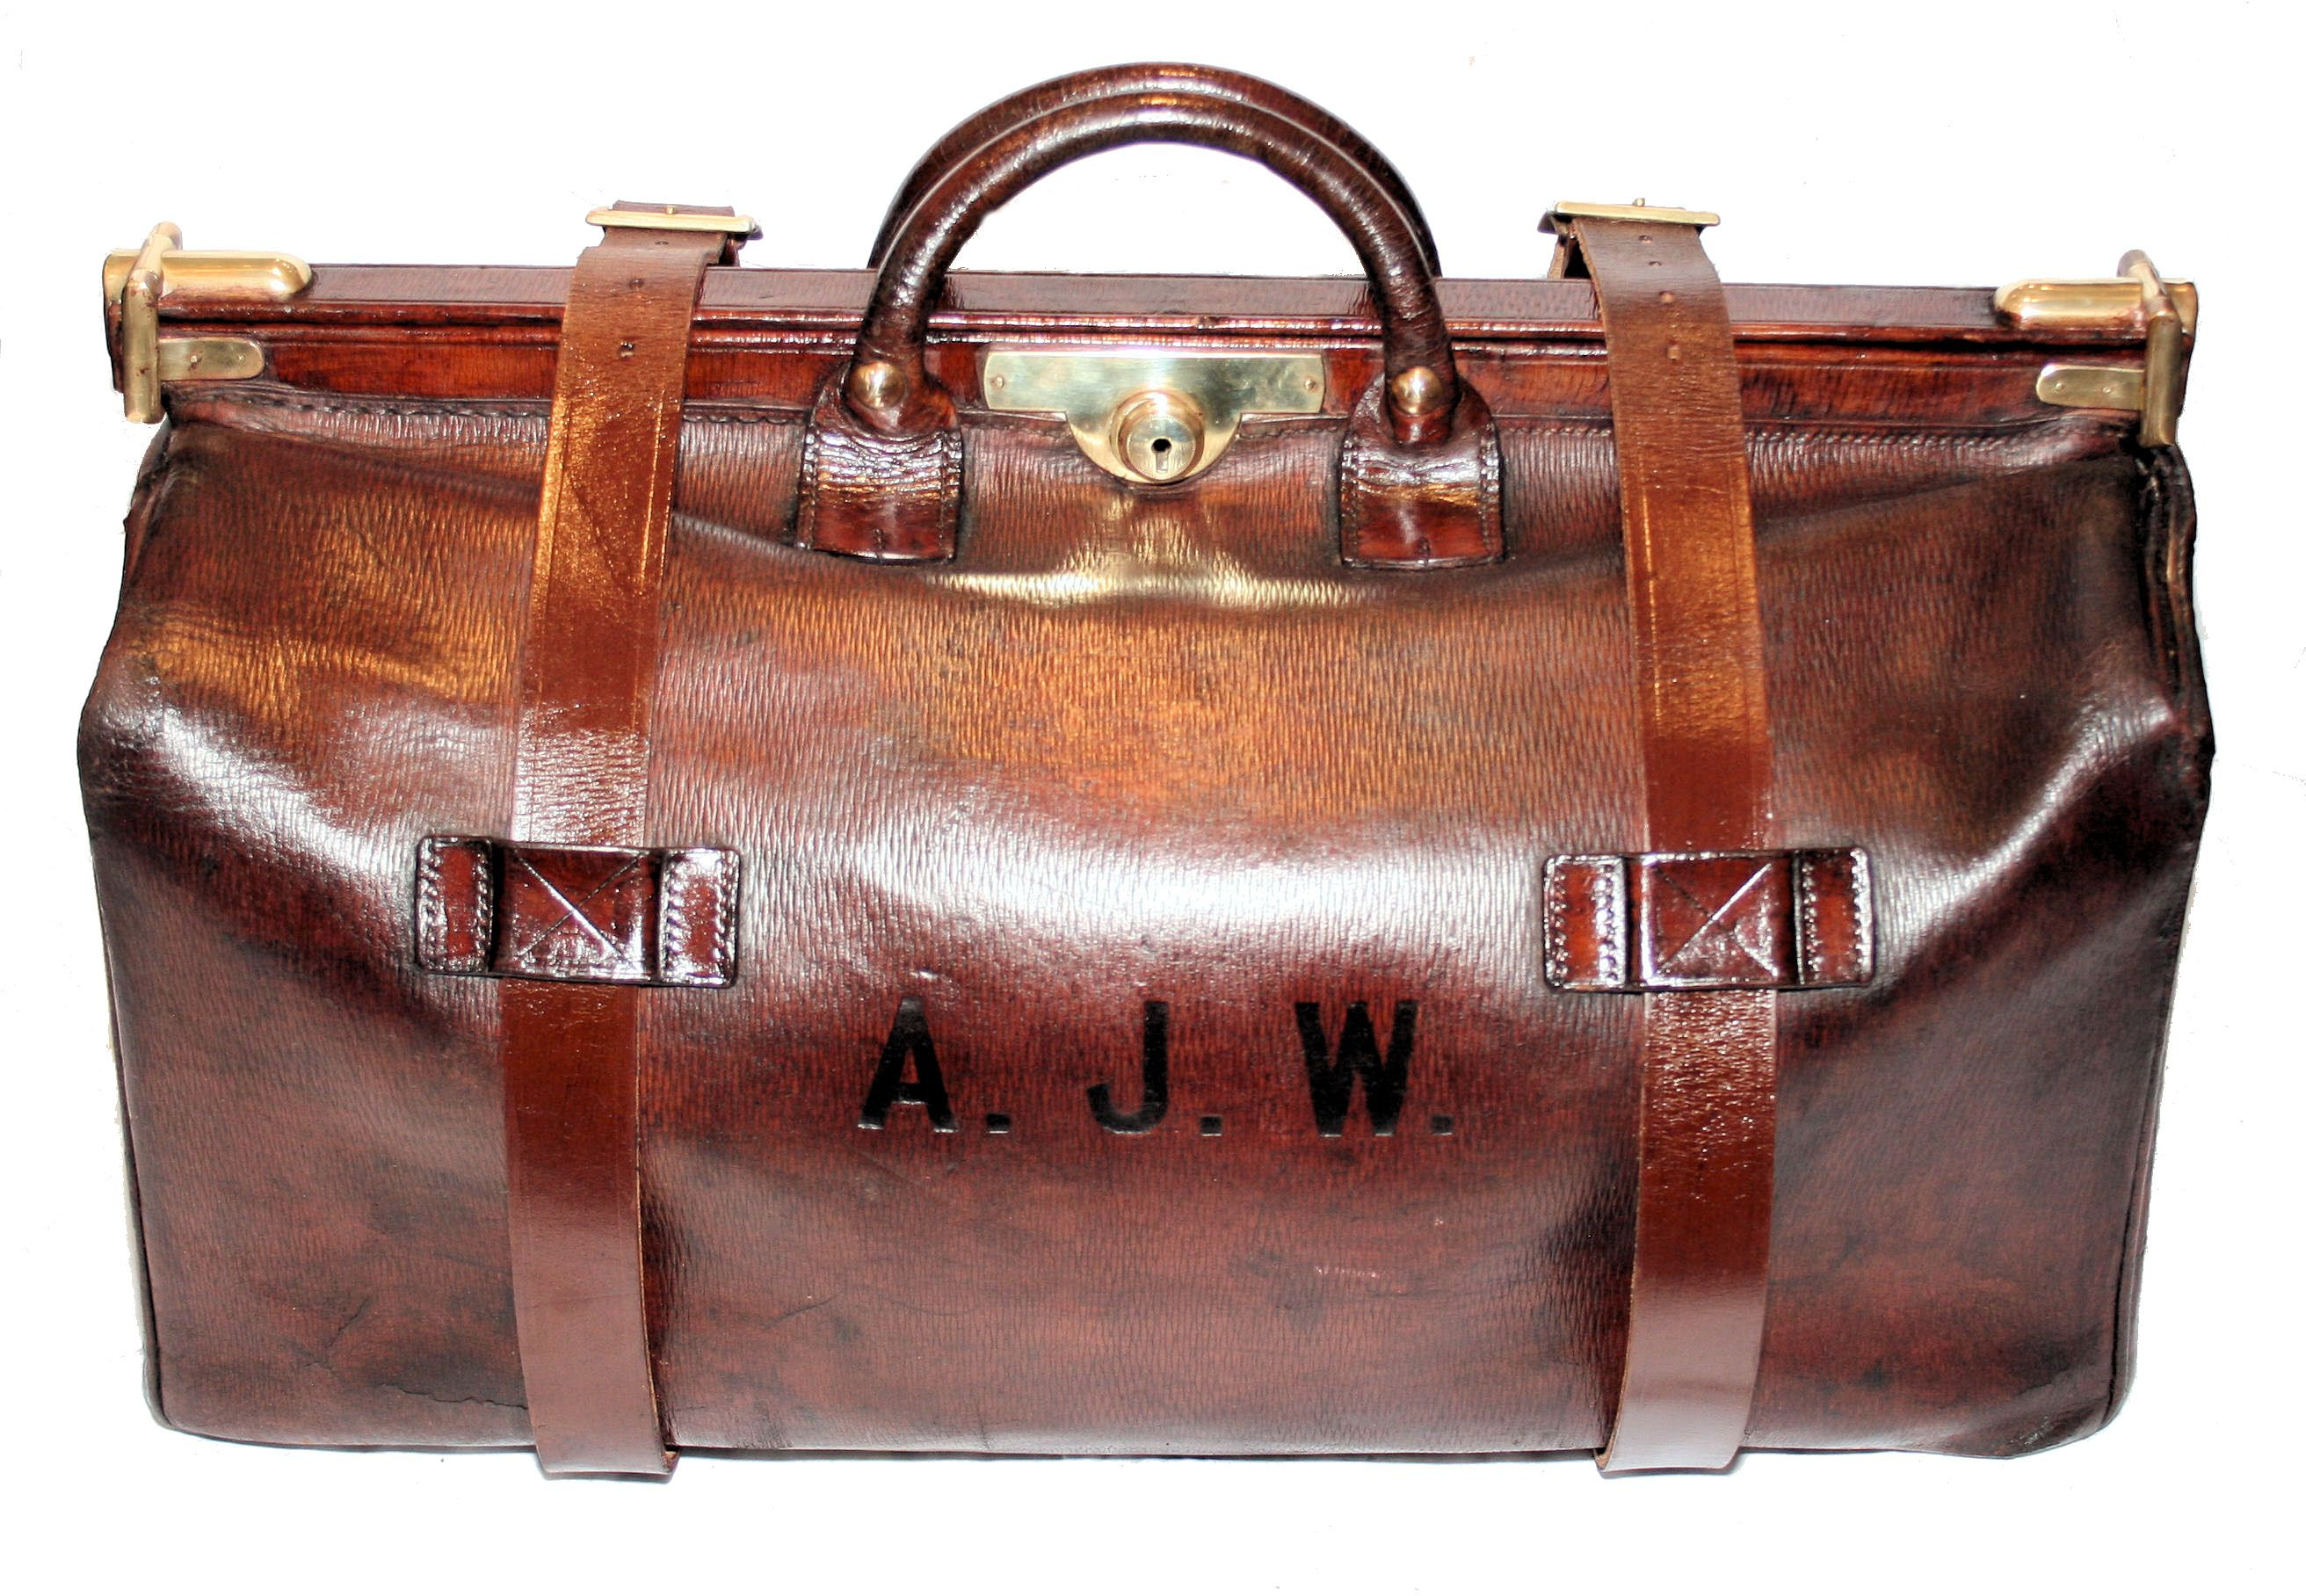 hight resolution of impressive large vintage leather gladstone bag with brass trims and lock and dating back to the 1930s from angell antiques